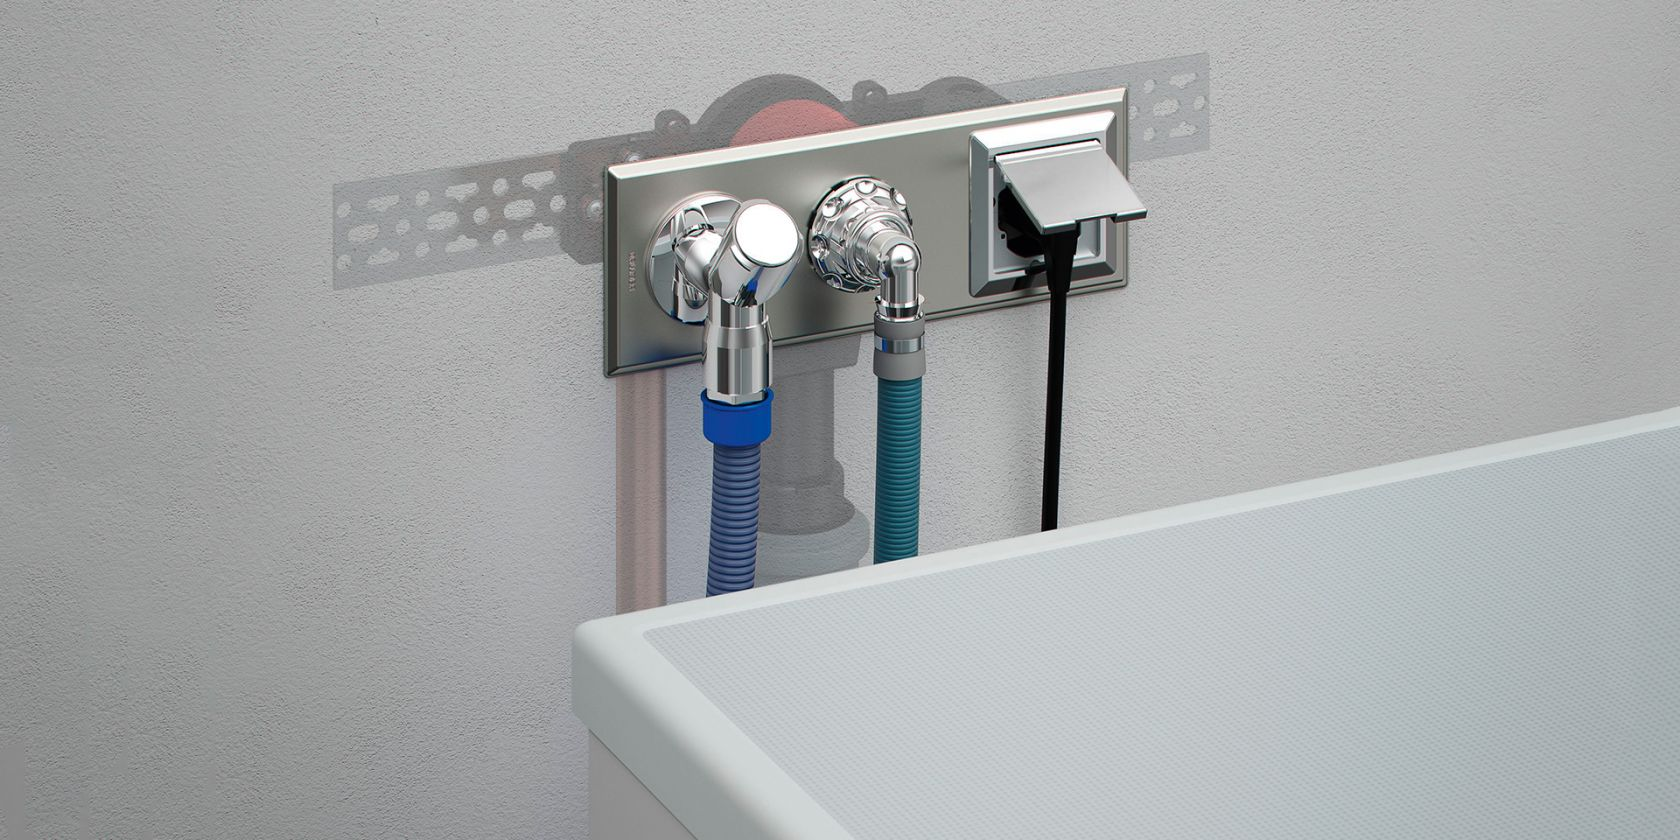 Concealed traps for washing appliances